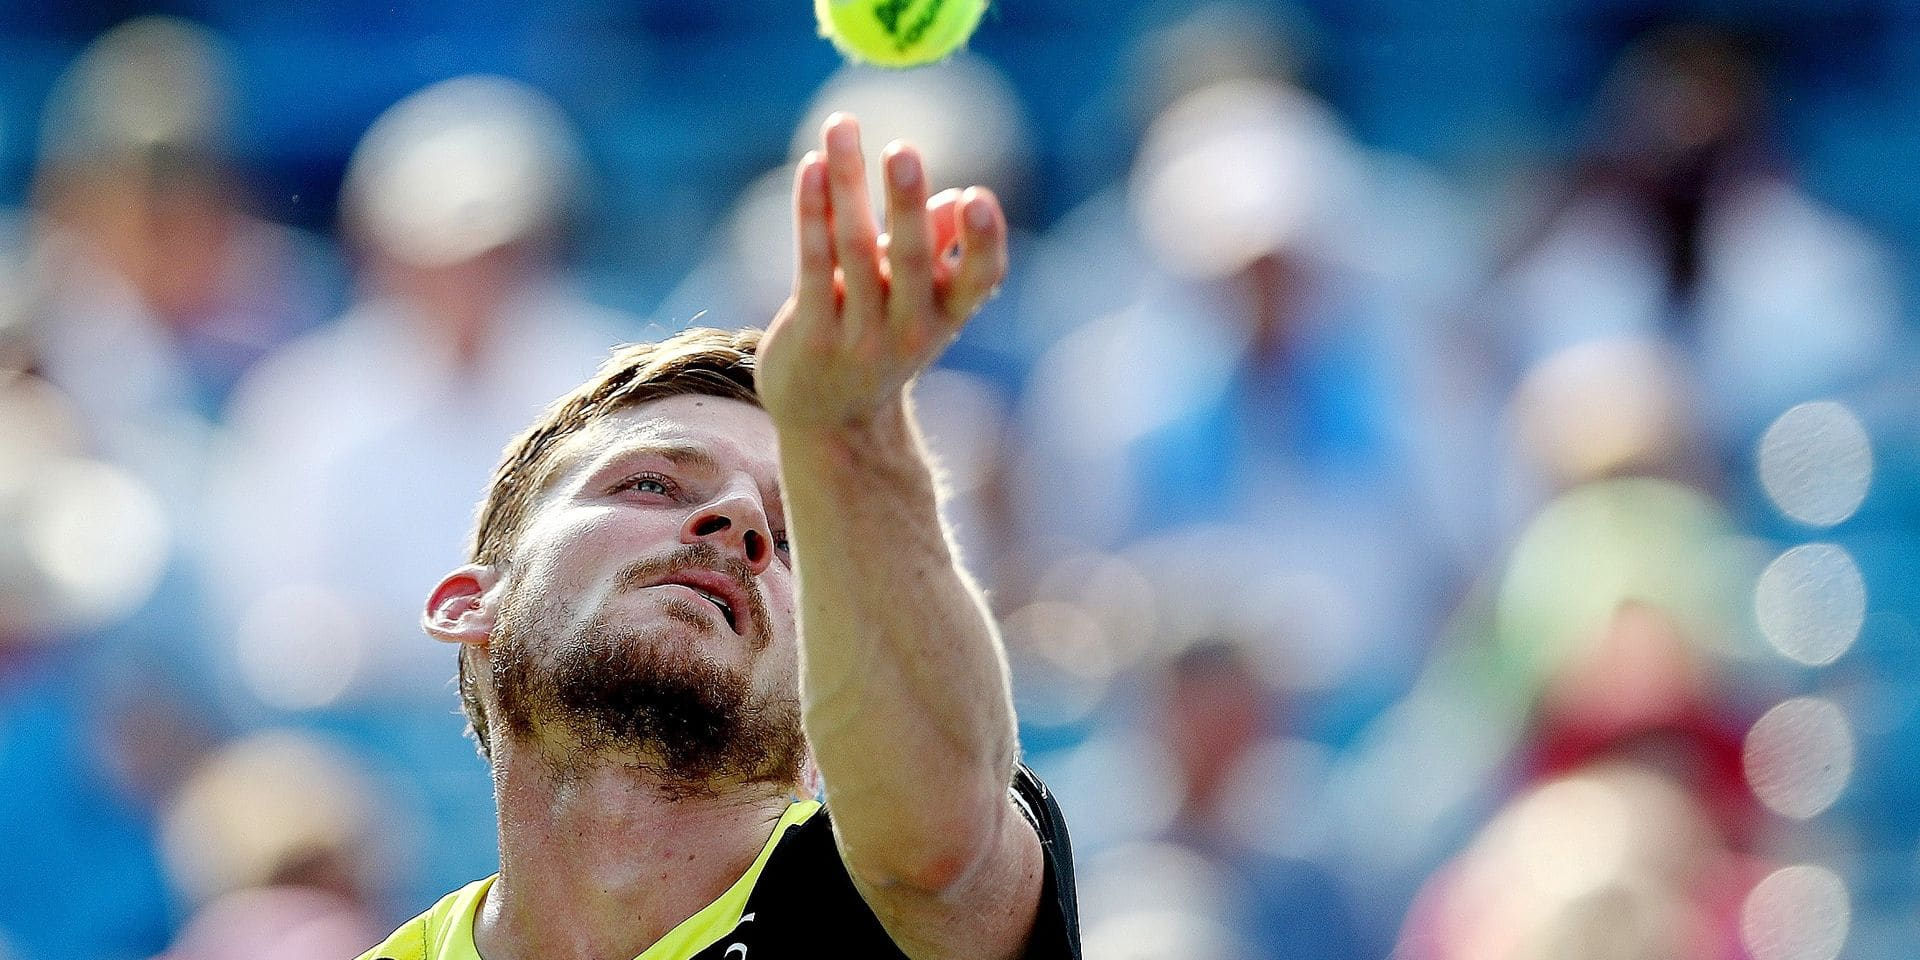 MASON, OHIO - AUGUST 18: David Goffin of Belgium serves to Daniil Medvedev of Russia during the men's final of the Western & Southern Open at Lindner Family Tennis Center on August 18, 2019 in Mason, Ohio. Matthew Stockman/Getty Images/AFP == FOR NEWSPAPERS, INTERNET, TELCOS & TELEVISION USE ONLY ==